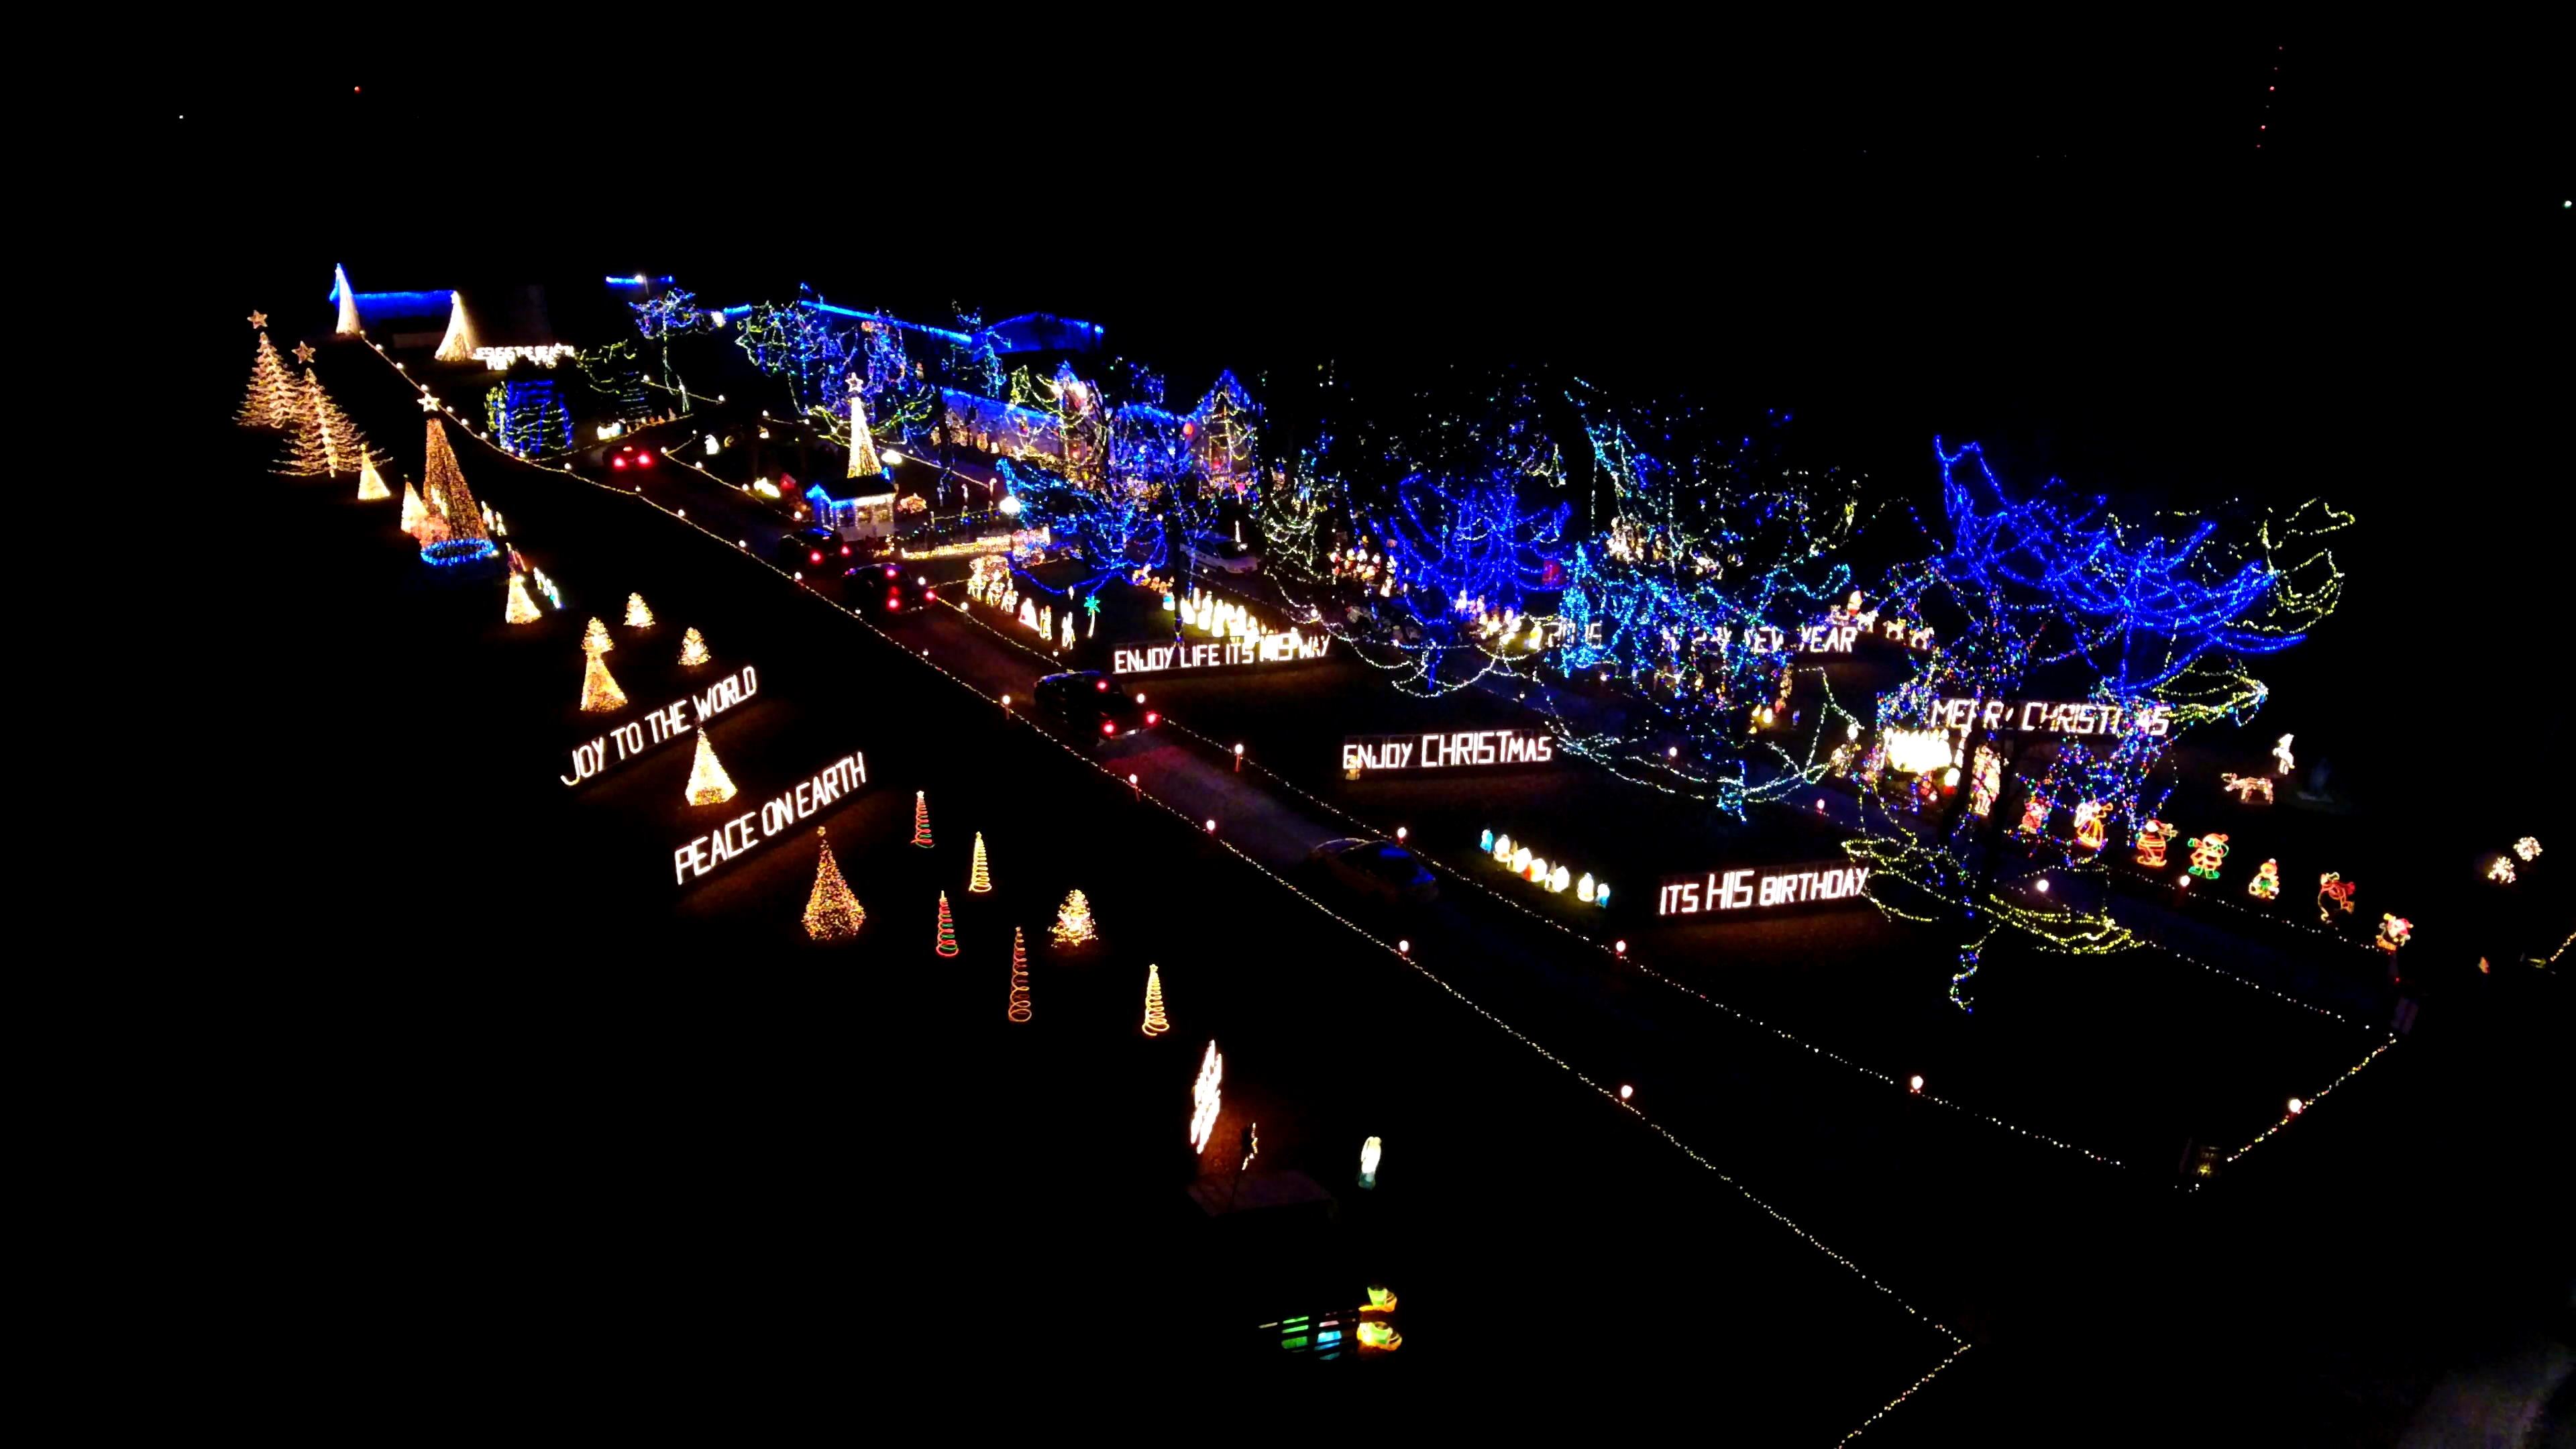 Tpa Park Christmas Lights 2021 Brighten The Holiday Season By Visiting These Central Indiana Light Displays Fox 59